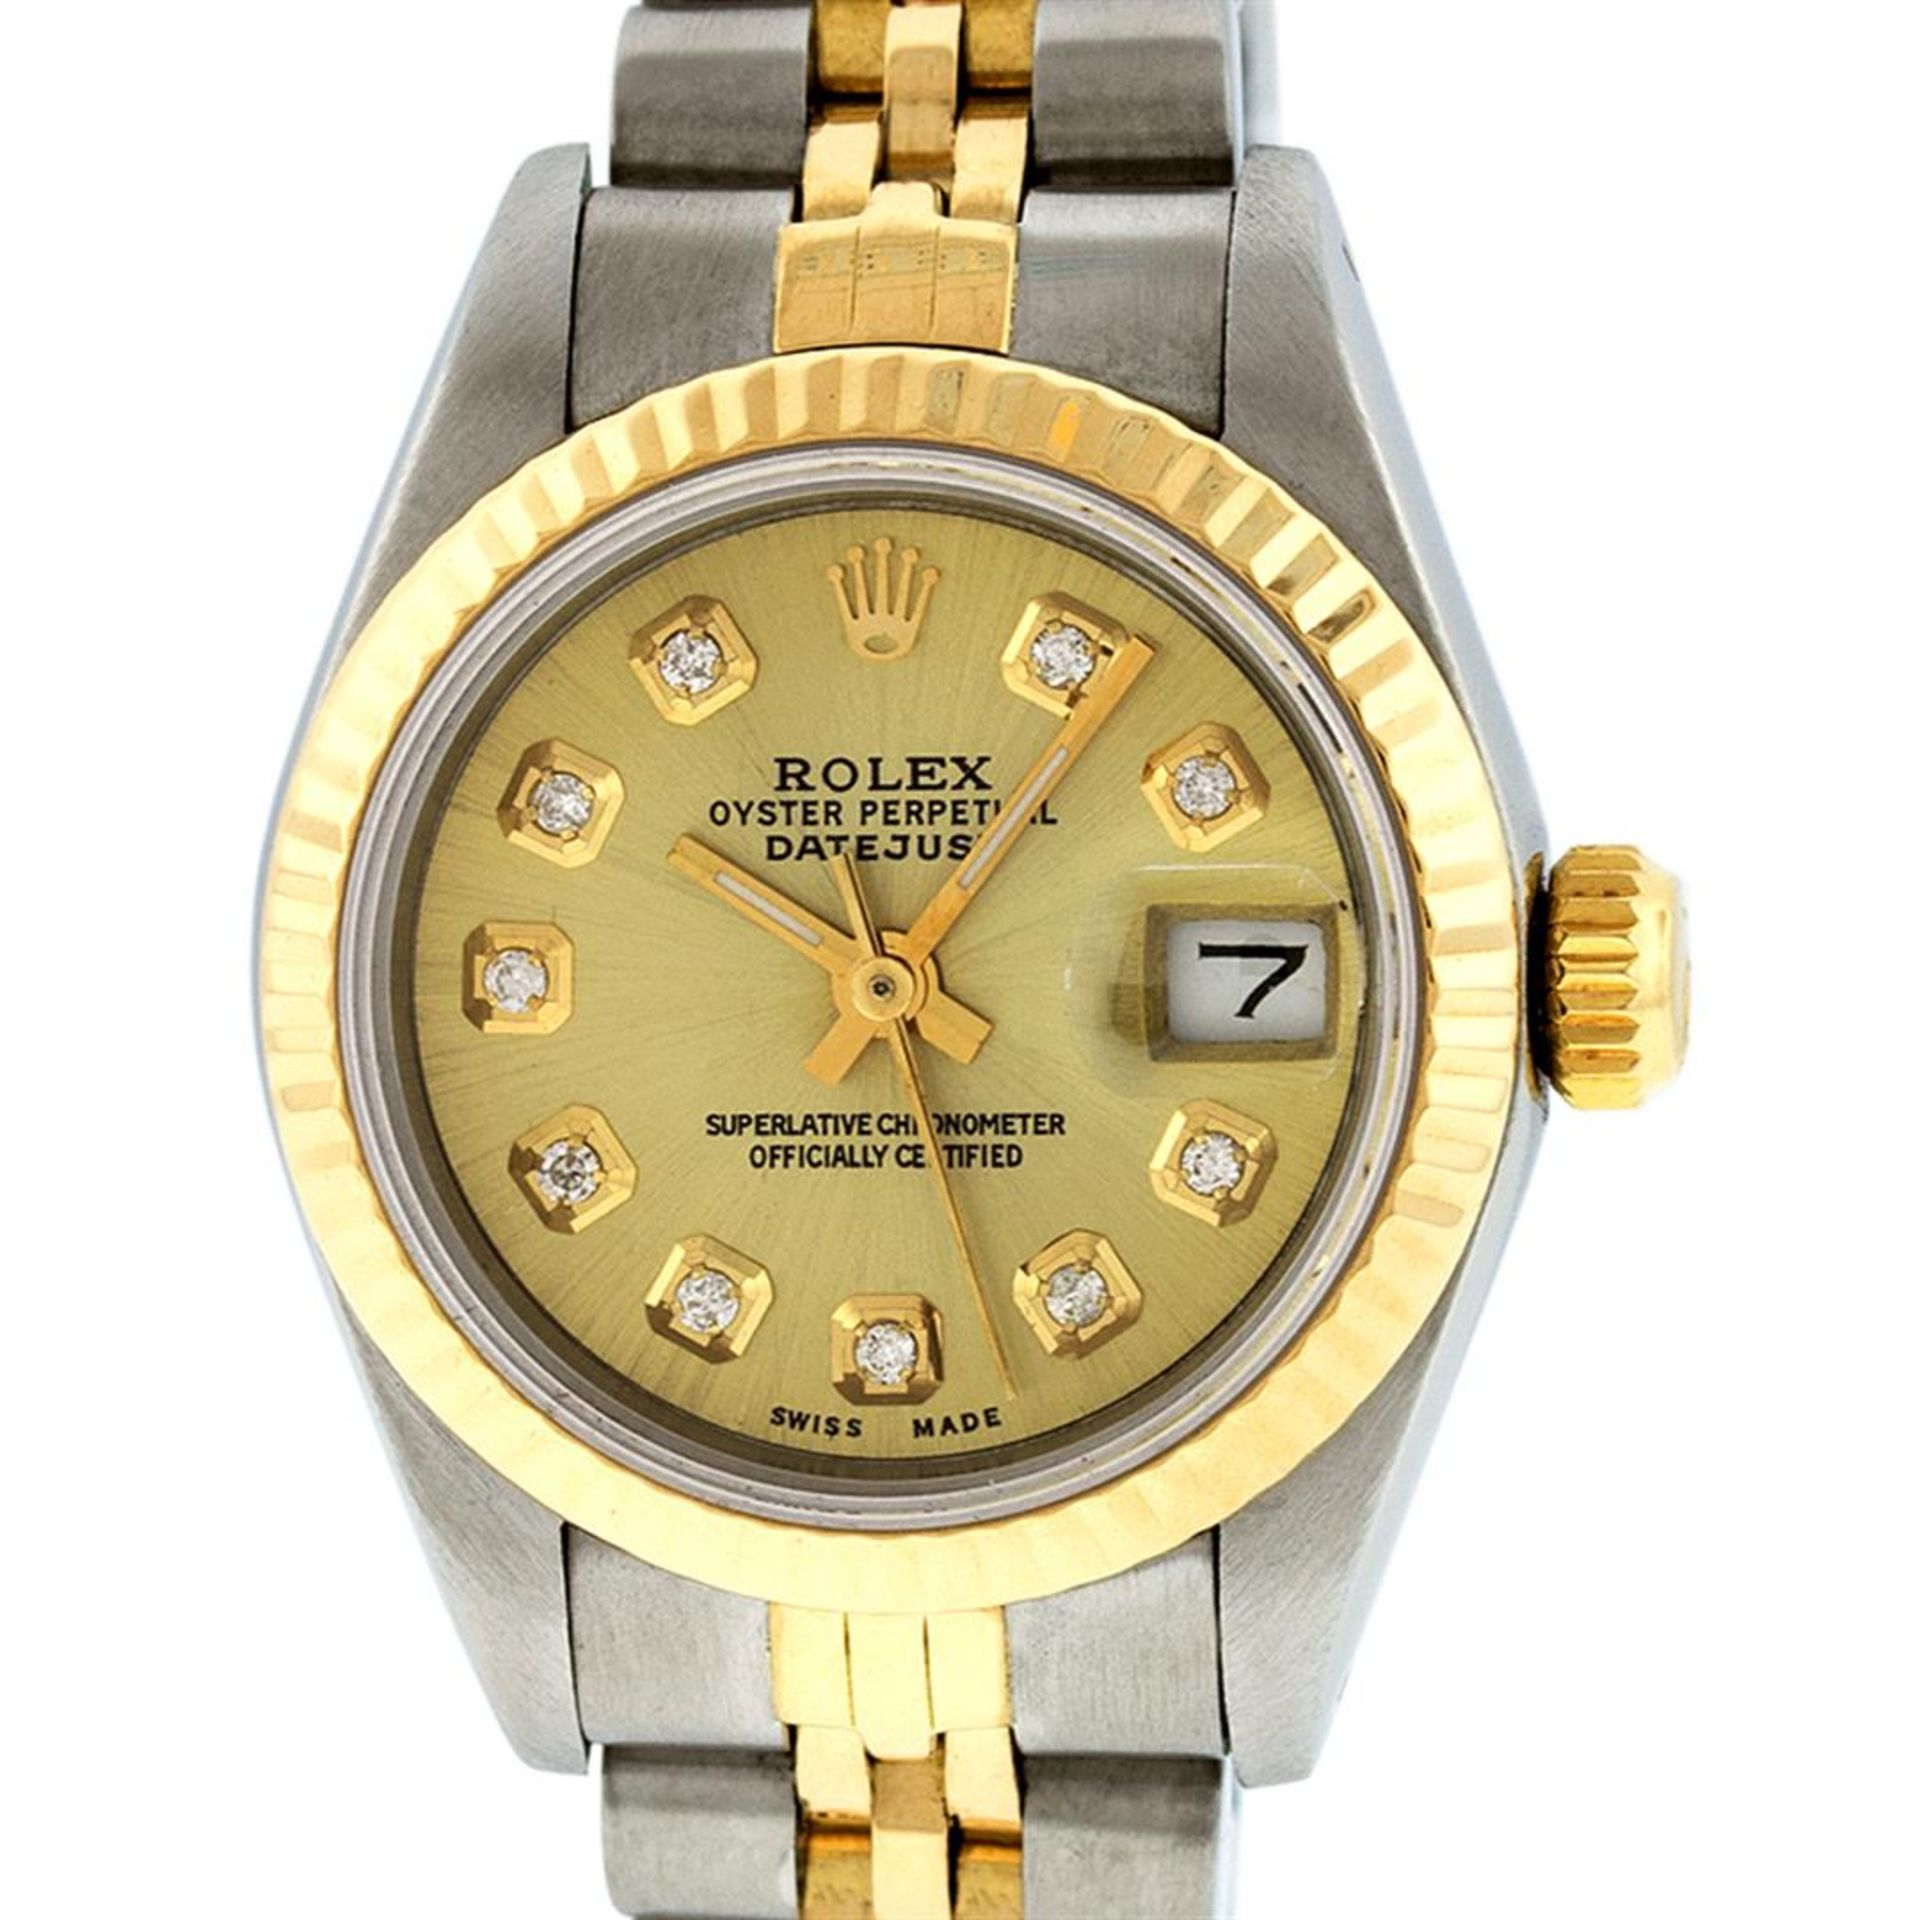 Rolex Ladies 2 Tone Champagne Diamond 26MM Datejust Wristwatch - Image 2 of 9